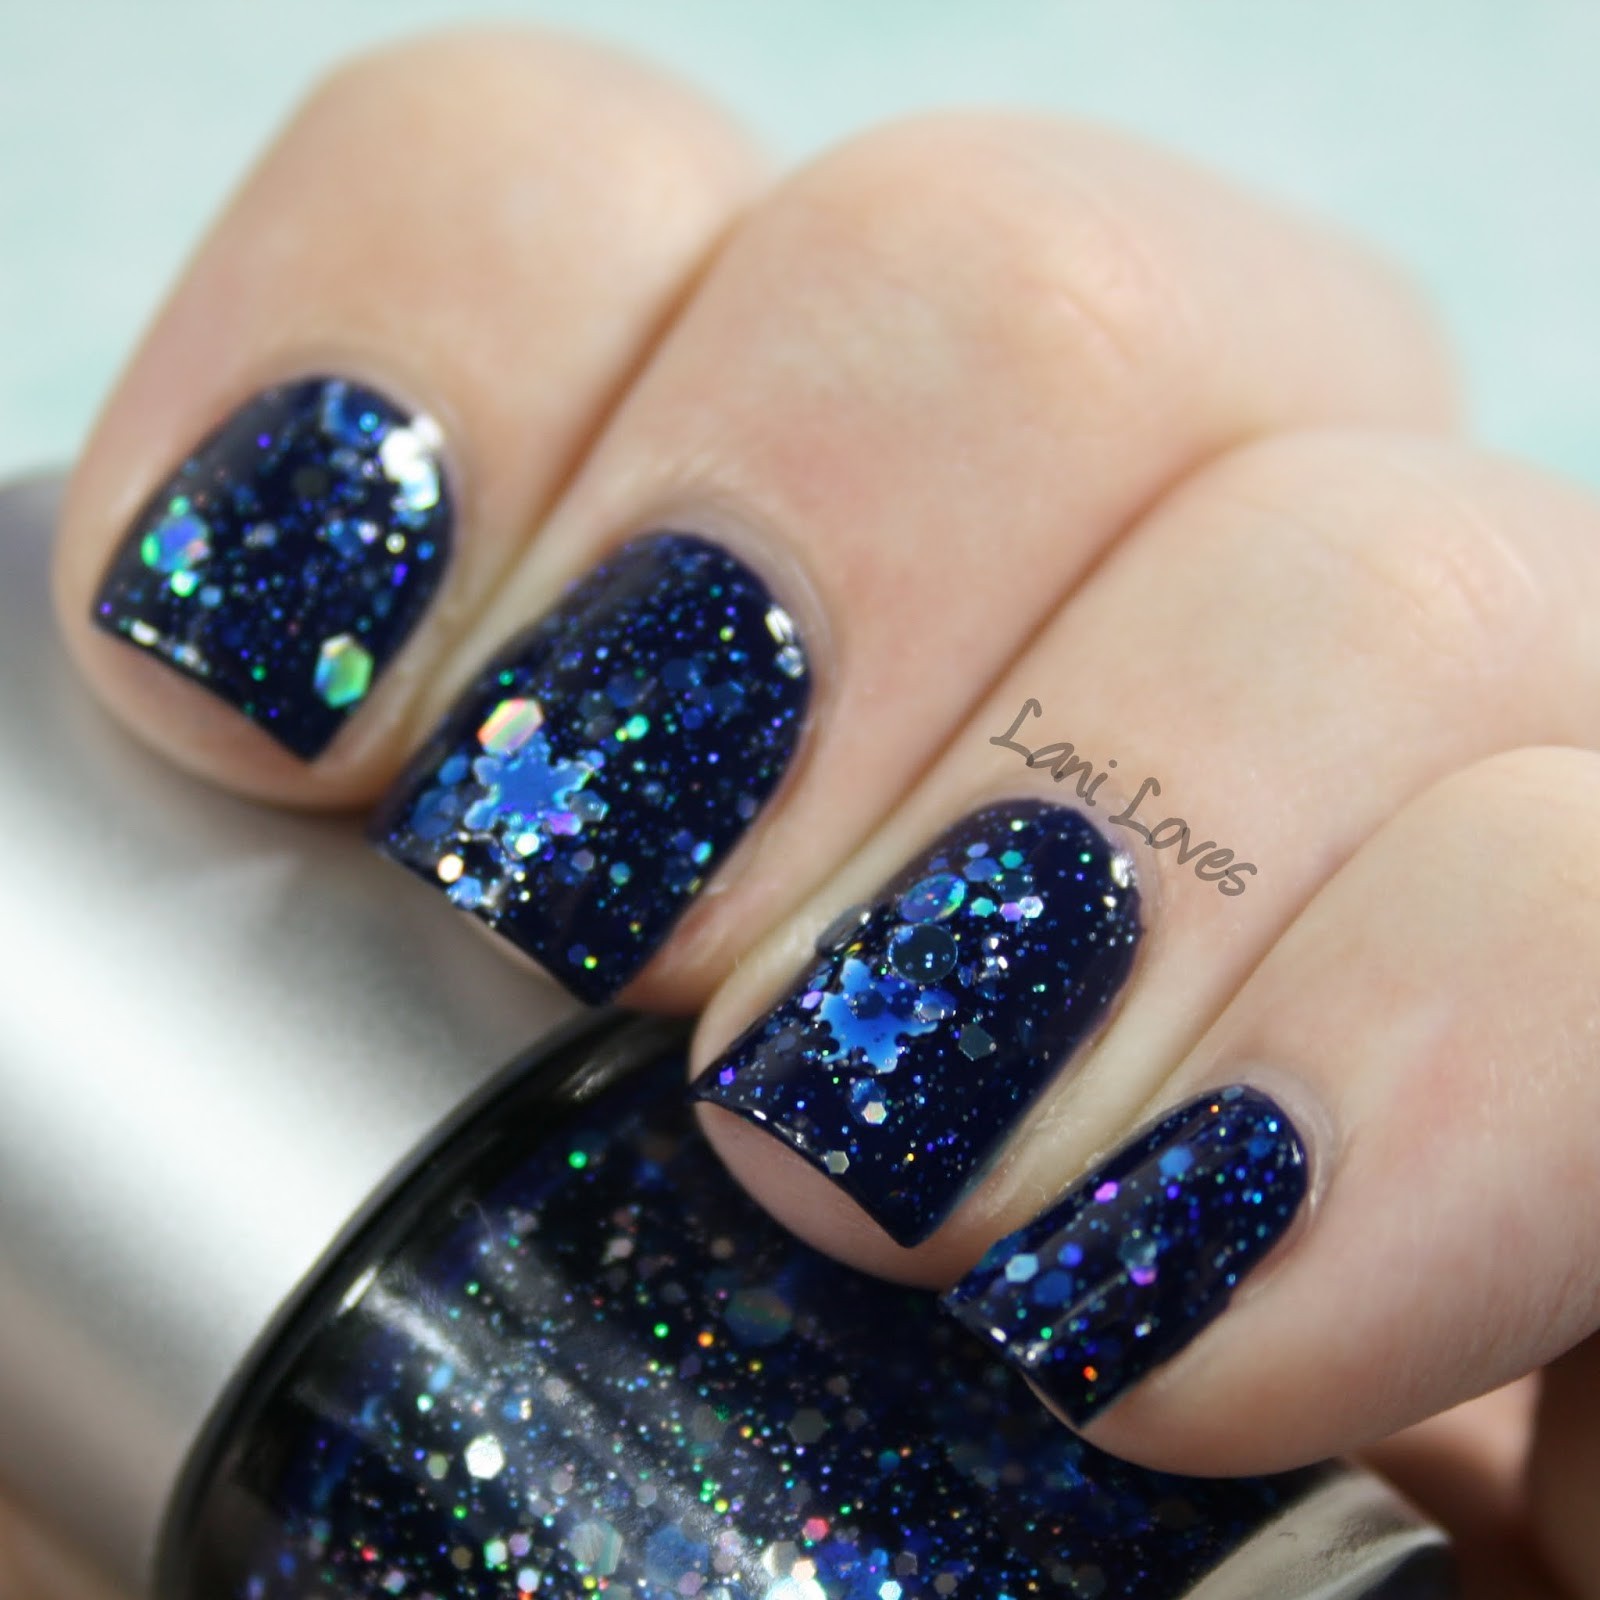 Star Kin - Glitter Wonderland Nail Polish Swatches & Review